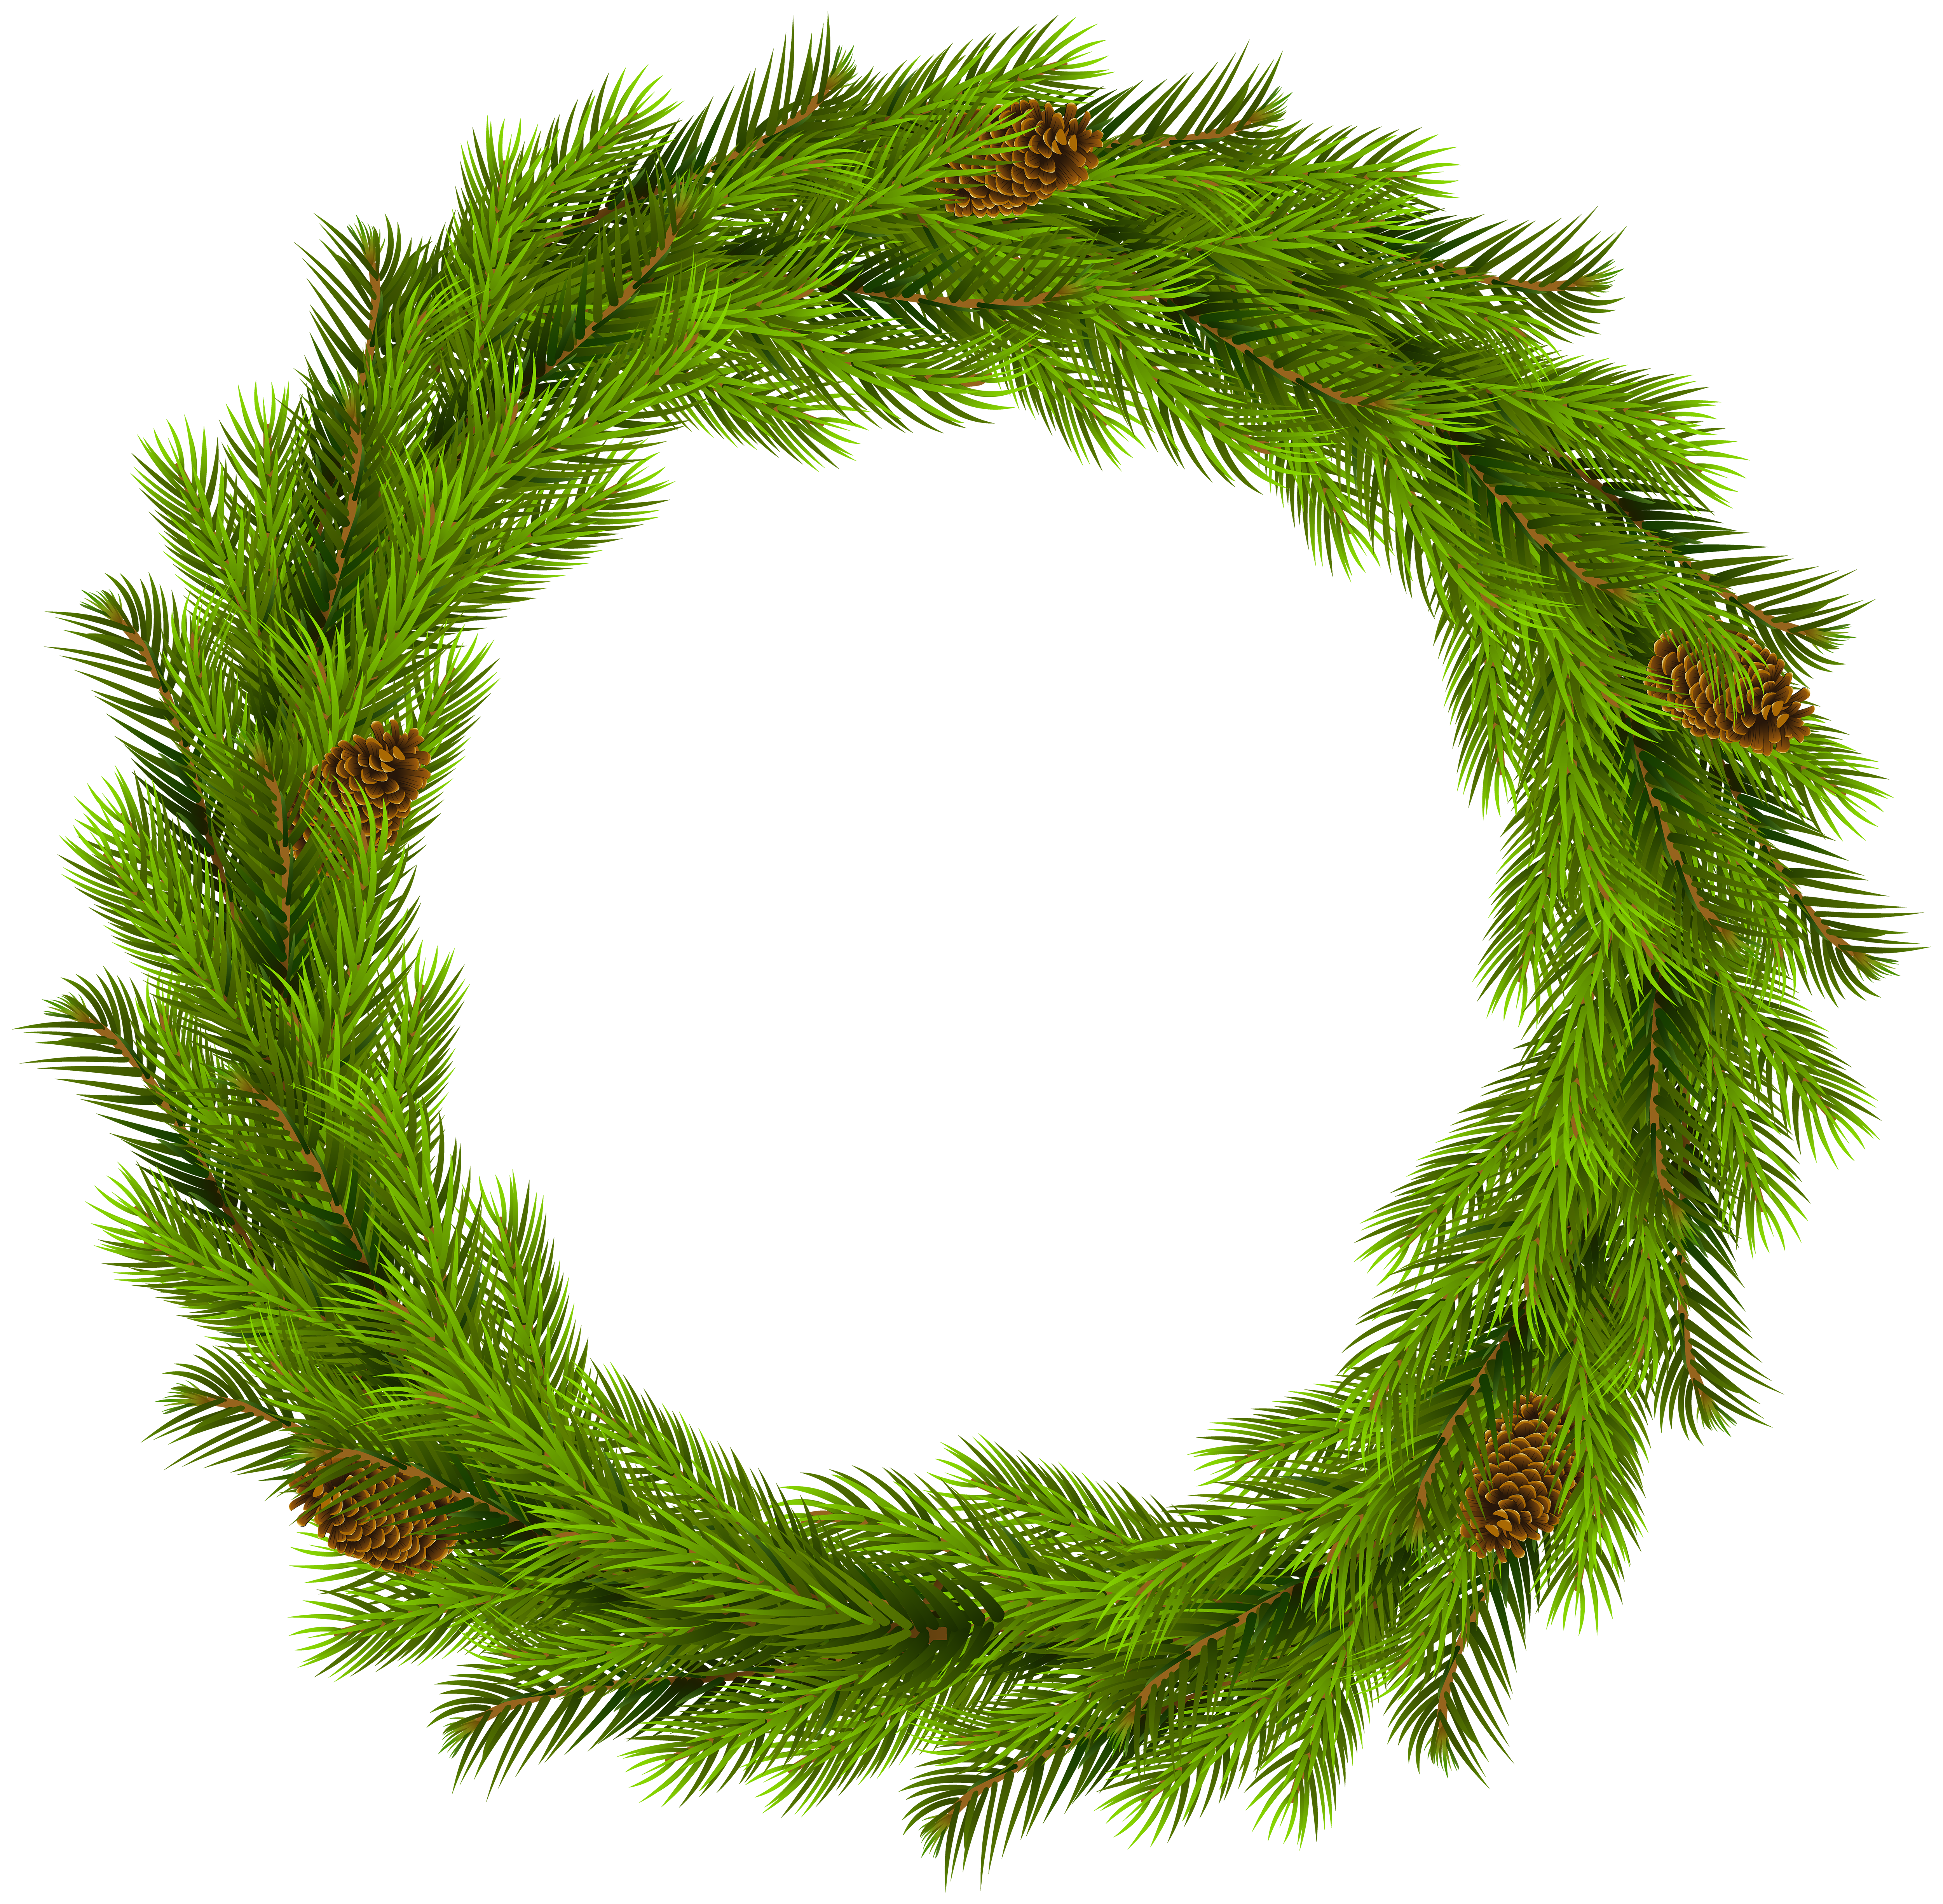 Christmas Wreath Png Transparent.Christmas Wreath Clipart At Getdrawings Com Free For